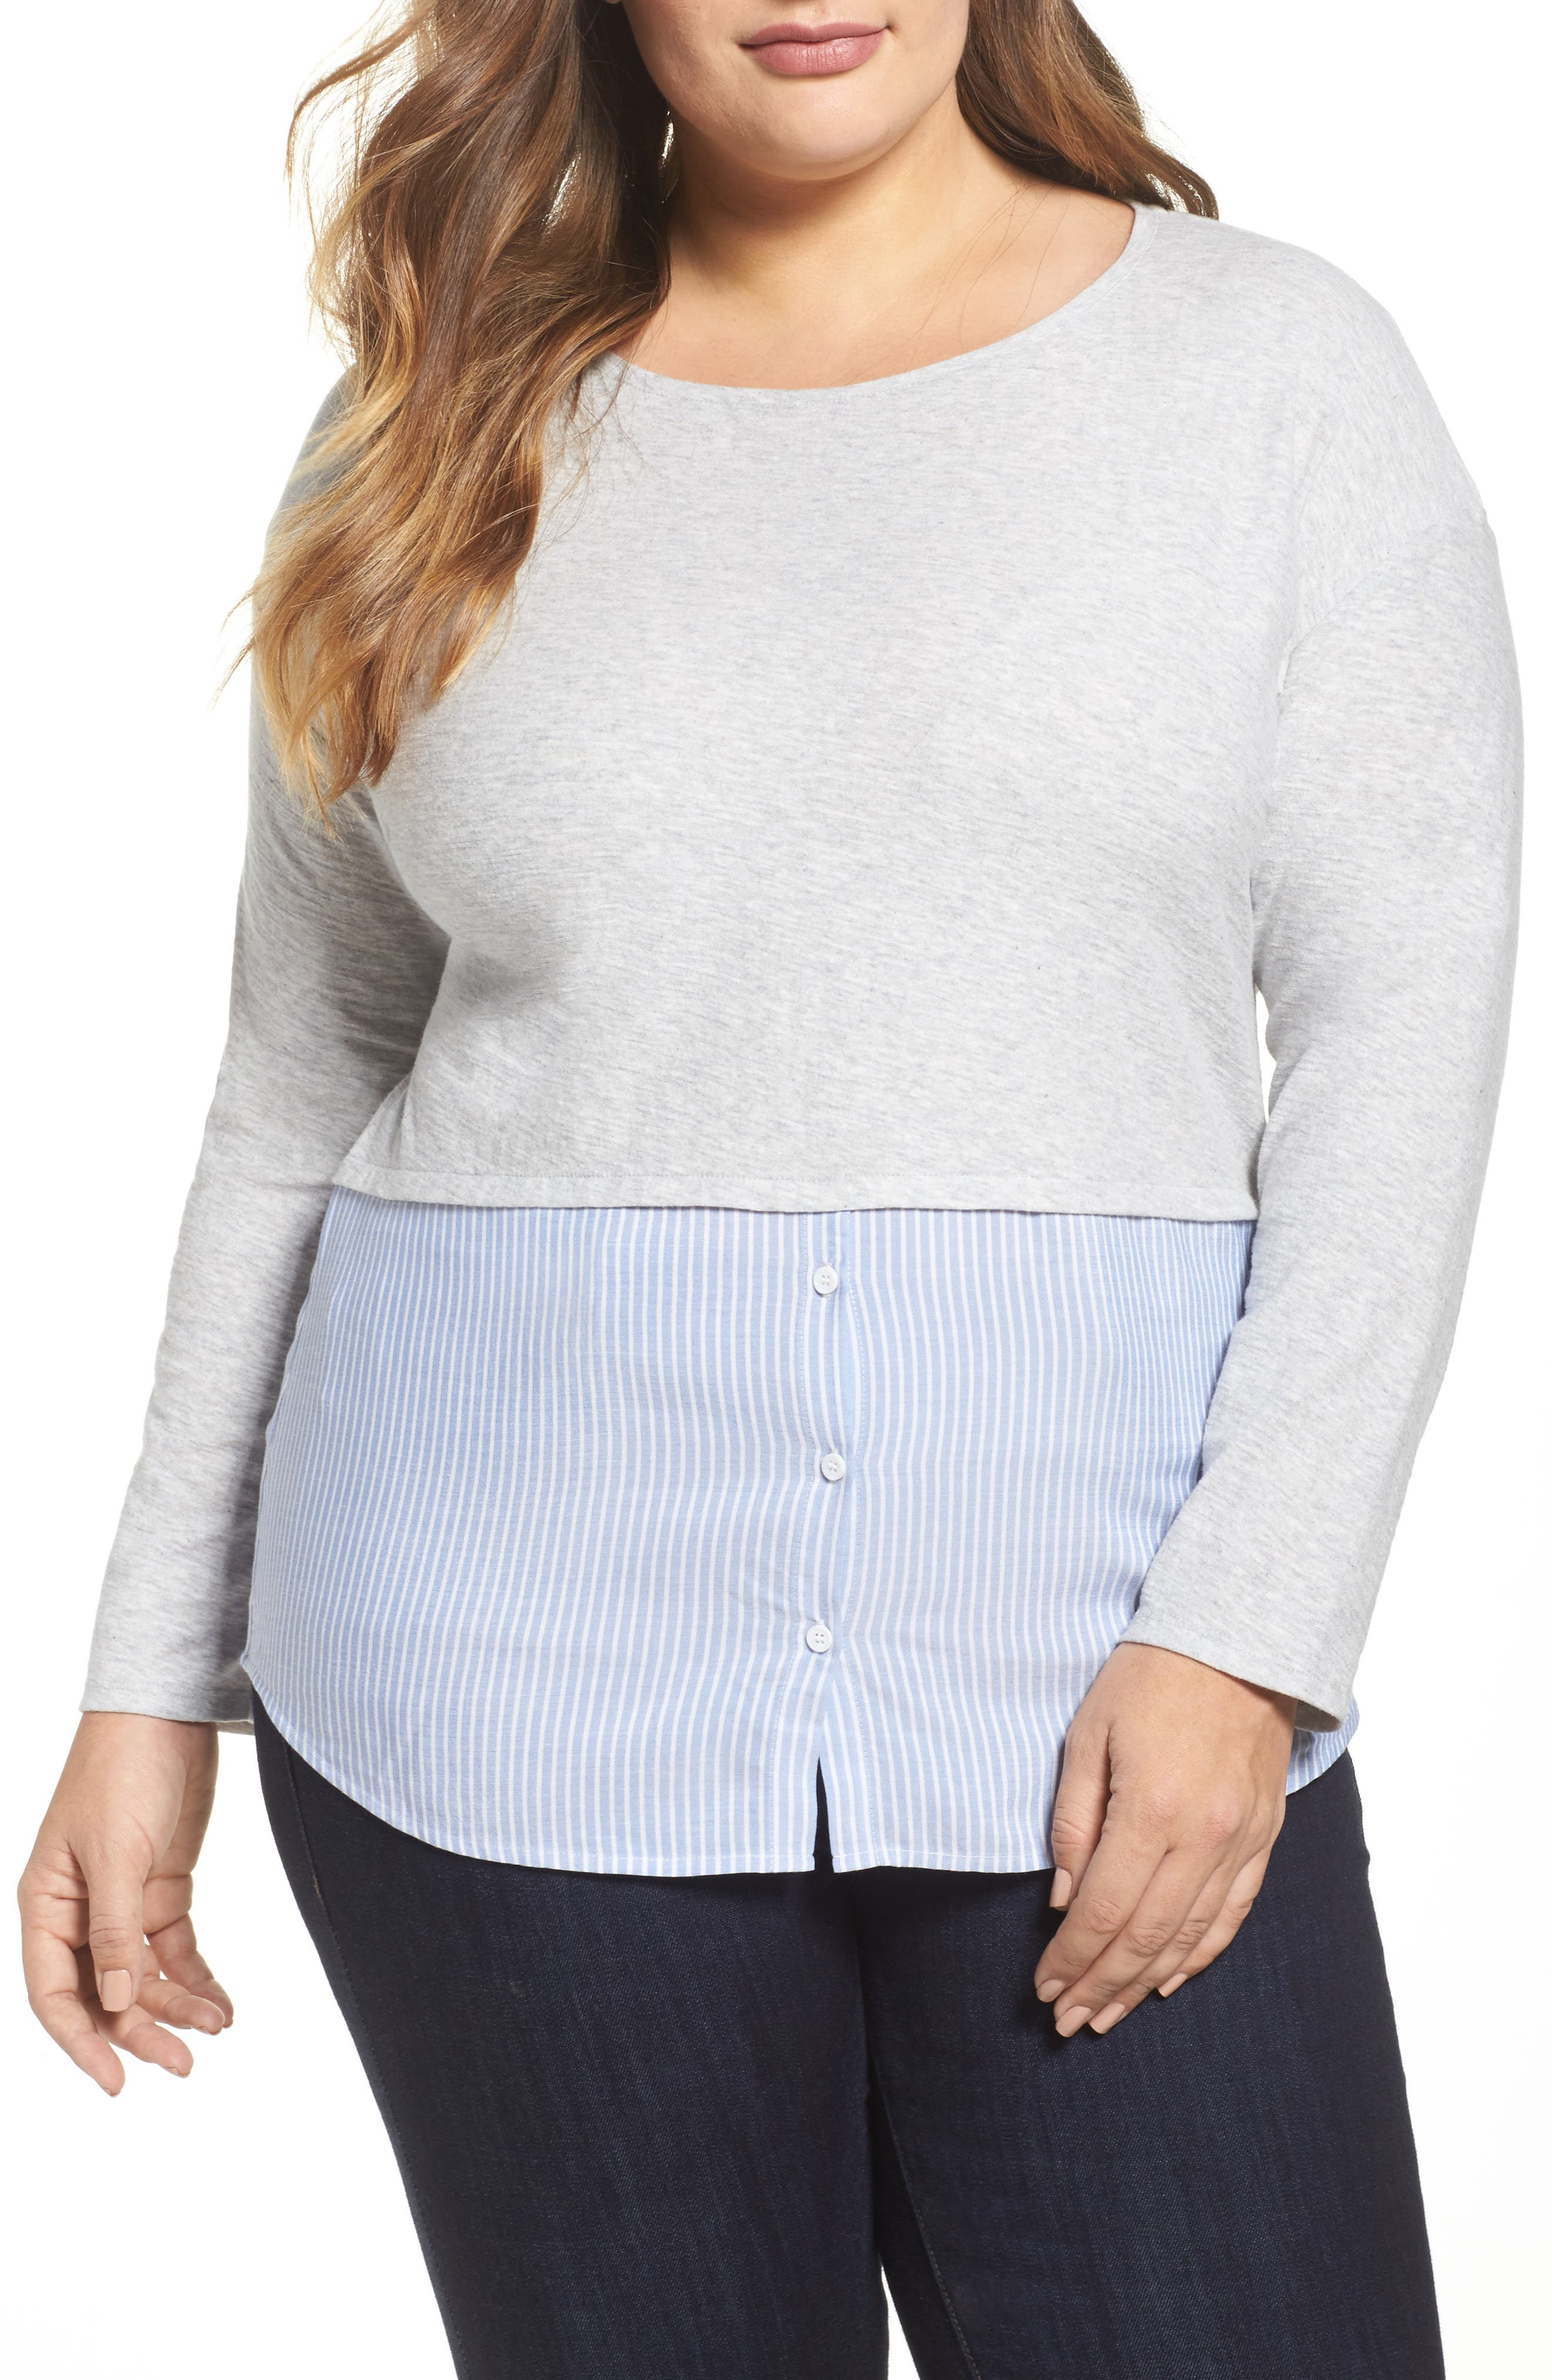 Main Image - Two by Vince Camuto Mixed Media Top (Plus Size)